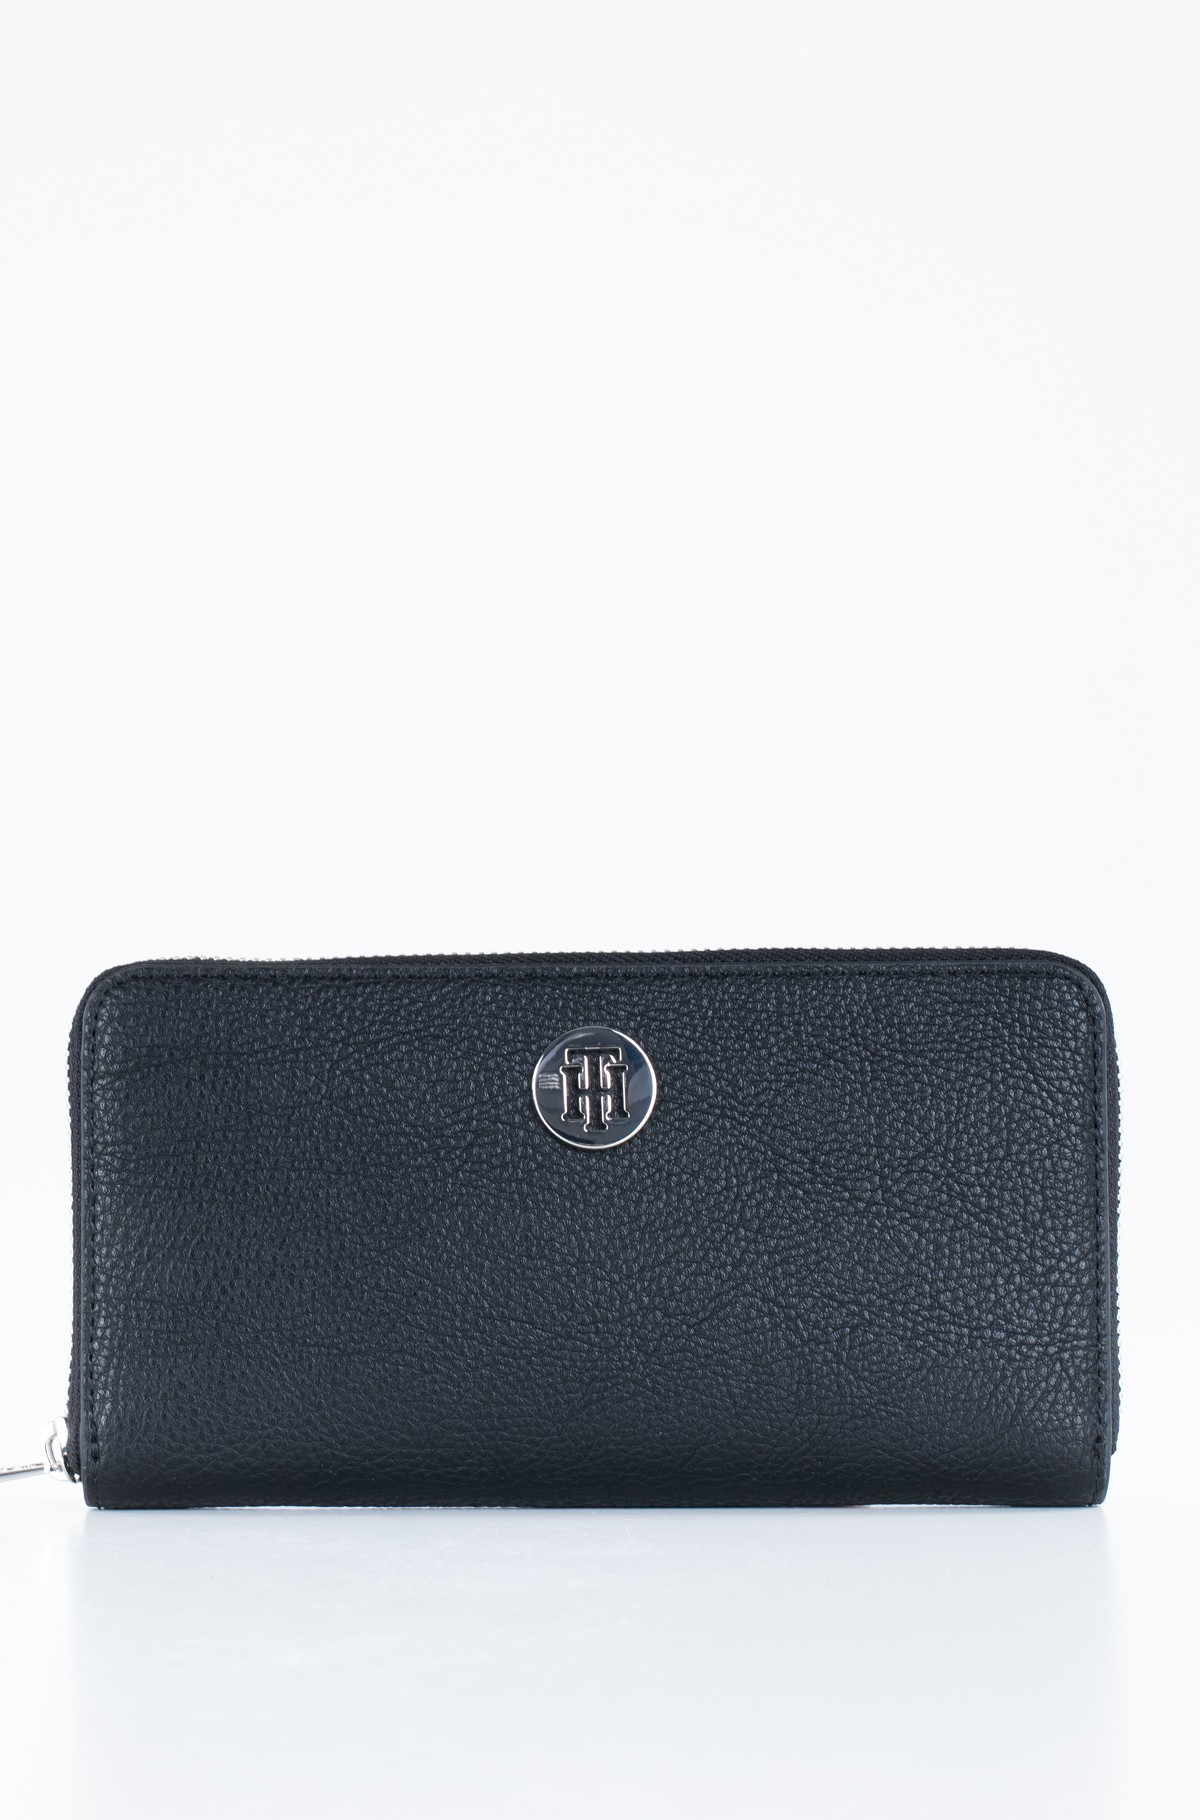 Wallet TH CORE LRG ZA WALLET-full-1